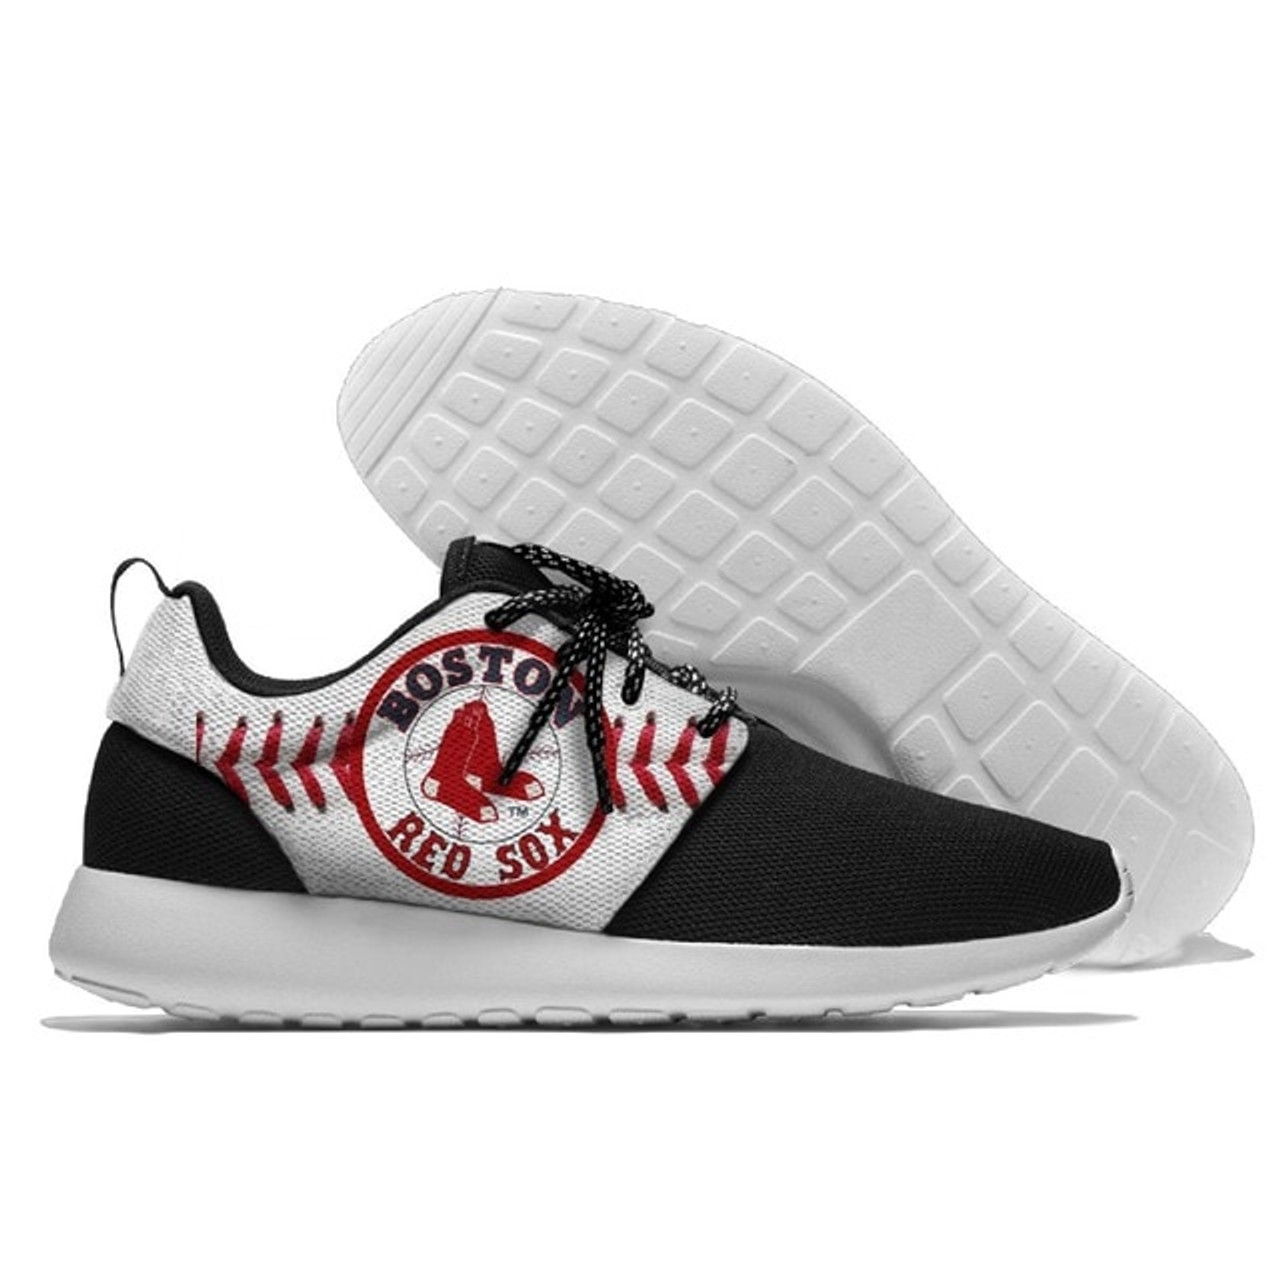 **(NEW-OFFICIALLY-LICENSED-M.L.B.BOSTON-RED-SOXS-RUNNING-SHOES,MENS-OR-WOMENS-ROSHE-STYLE,LIGHT-WEIGHT-SPORT-PREMIUM-RUNNING-SHOES/WITH-OFFICIAL-RED-SOXS-TEAM-COLORS & RED-SOXS-TEAM-LOGOS,SPECIAL-CUSHIONED-COMFORT-INSOLES/COMES-IN-ALL-SIZES:)**